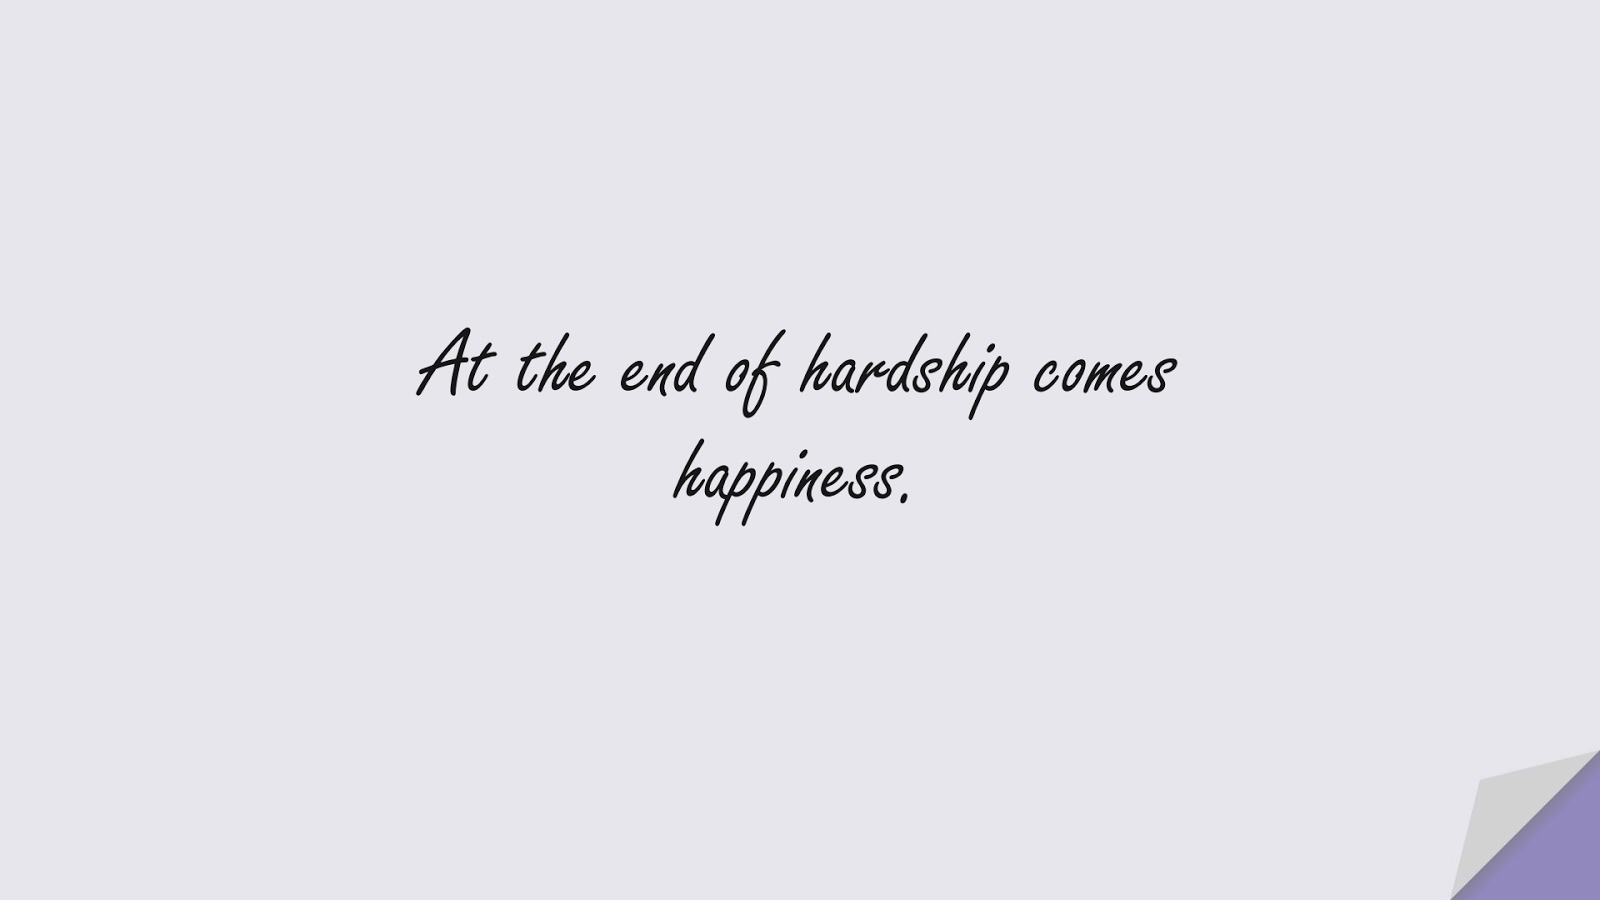 At the end of hardship comes happiness.FALSE